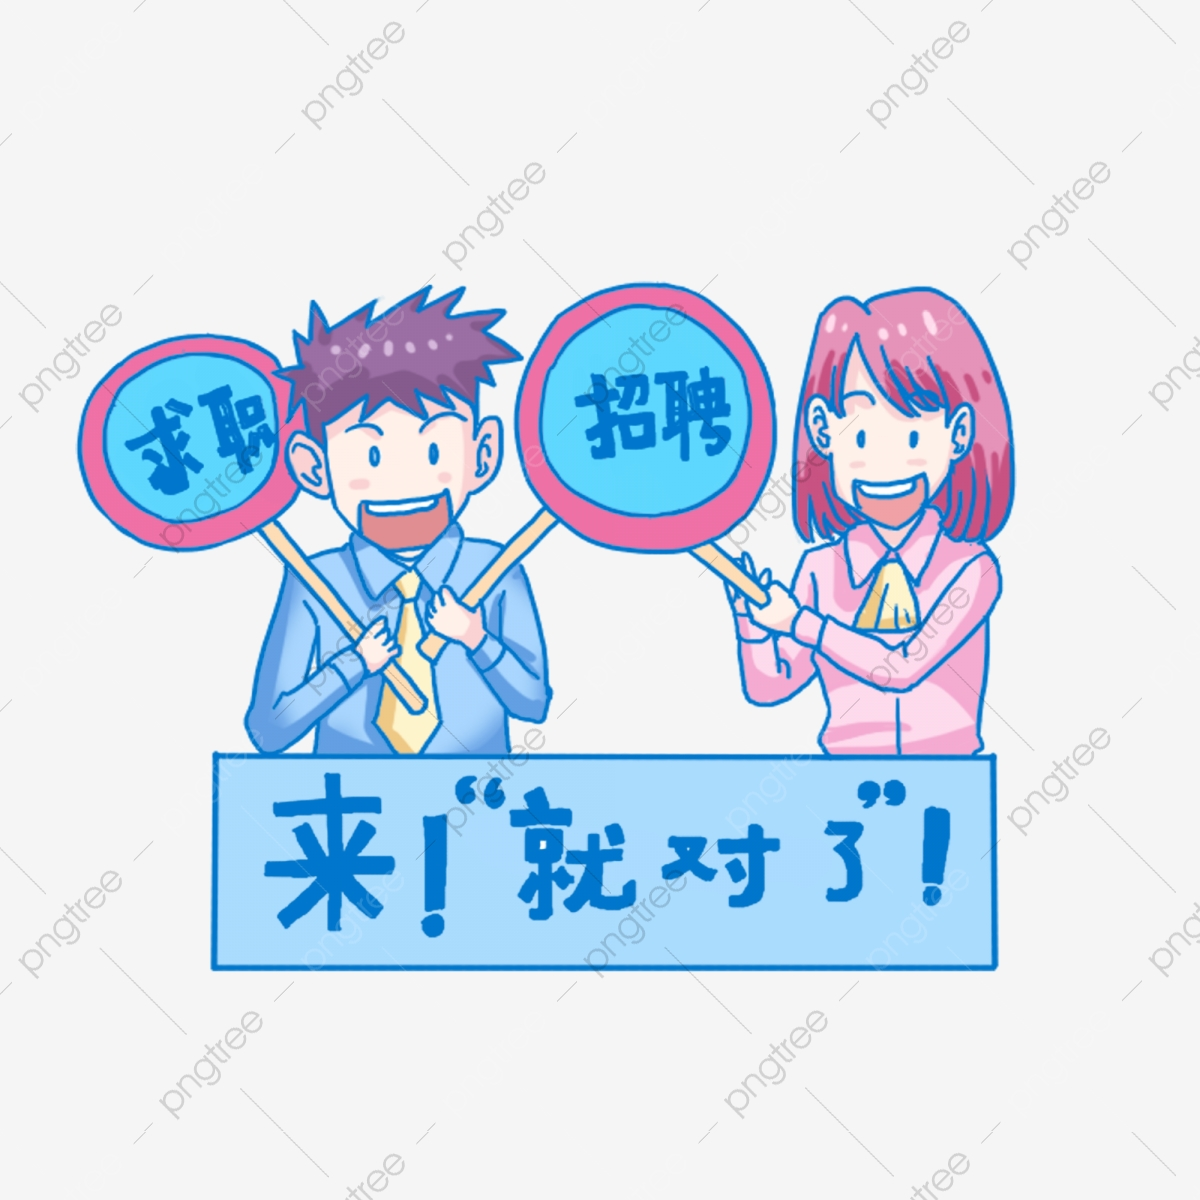 Job Hunting Cartoon Illustration Recruitment Illustration Cartoon Illustration Job Search Png Transparent Clipart Image And Psd File For Free Download